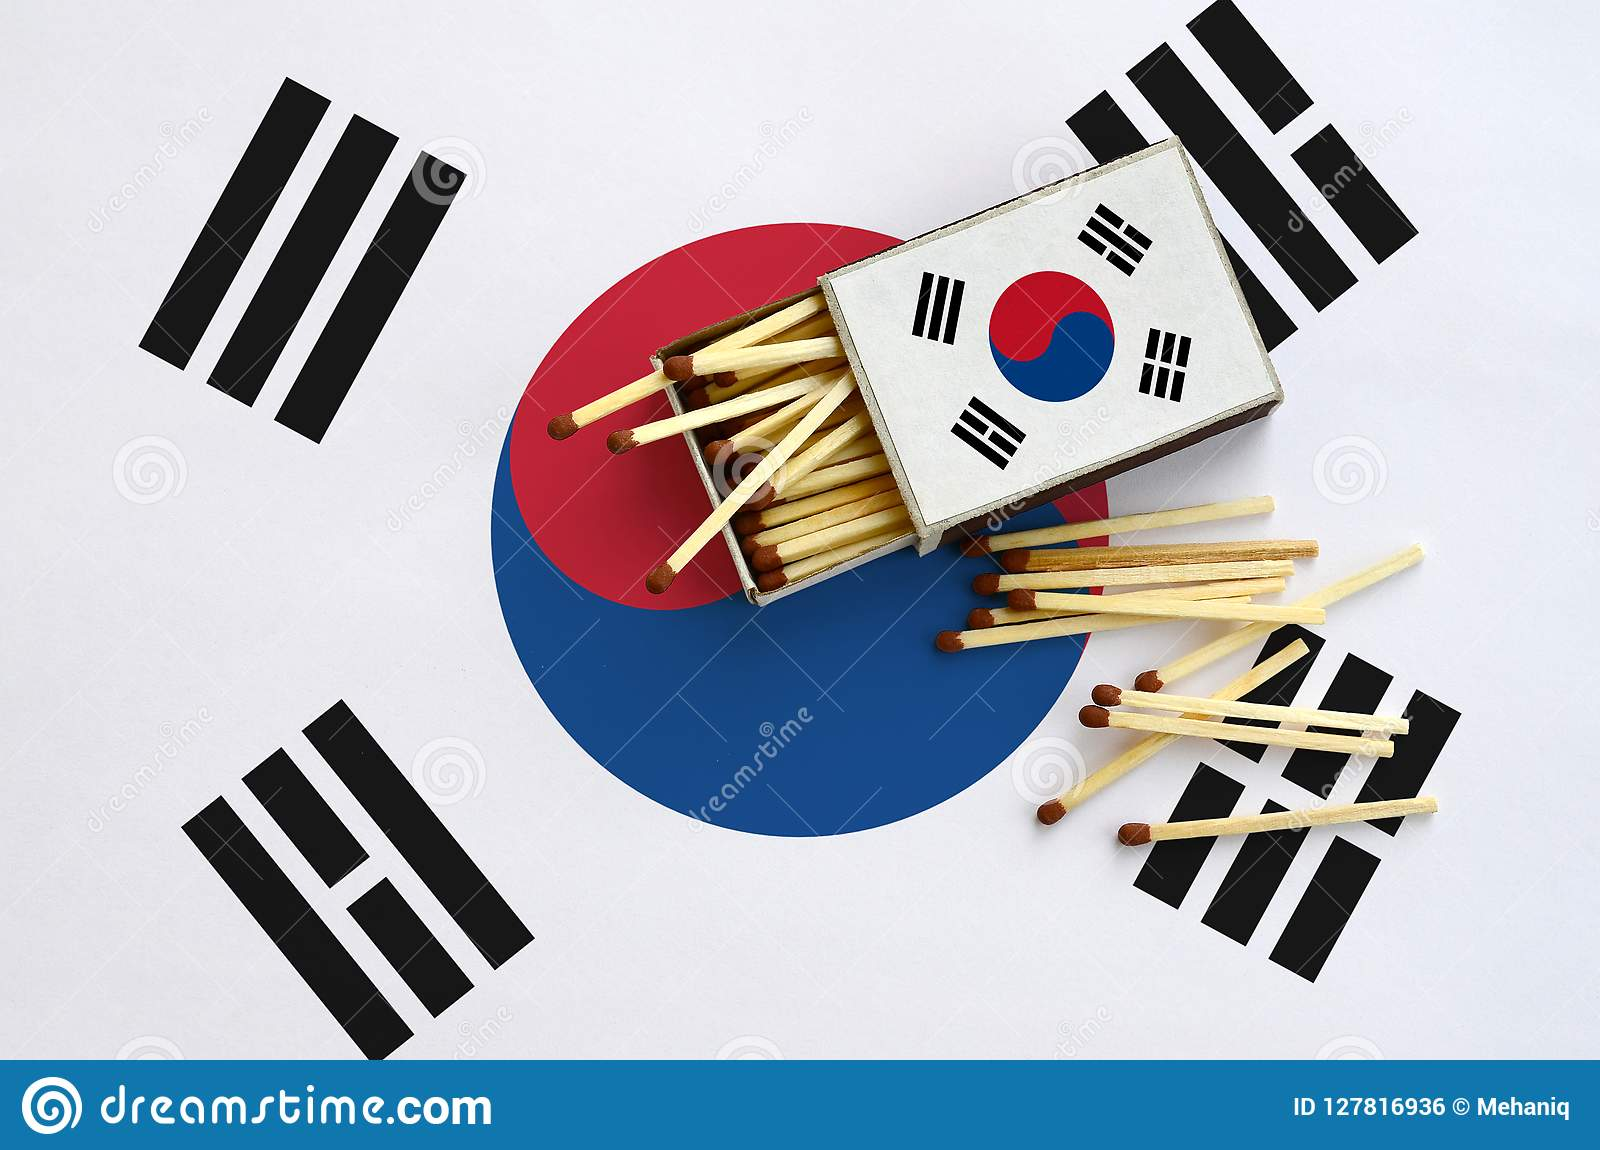 South Korea flag is shown on an open matchbox, from which several matches fall and lies on a large flag